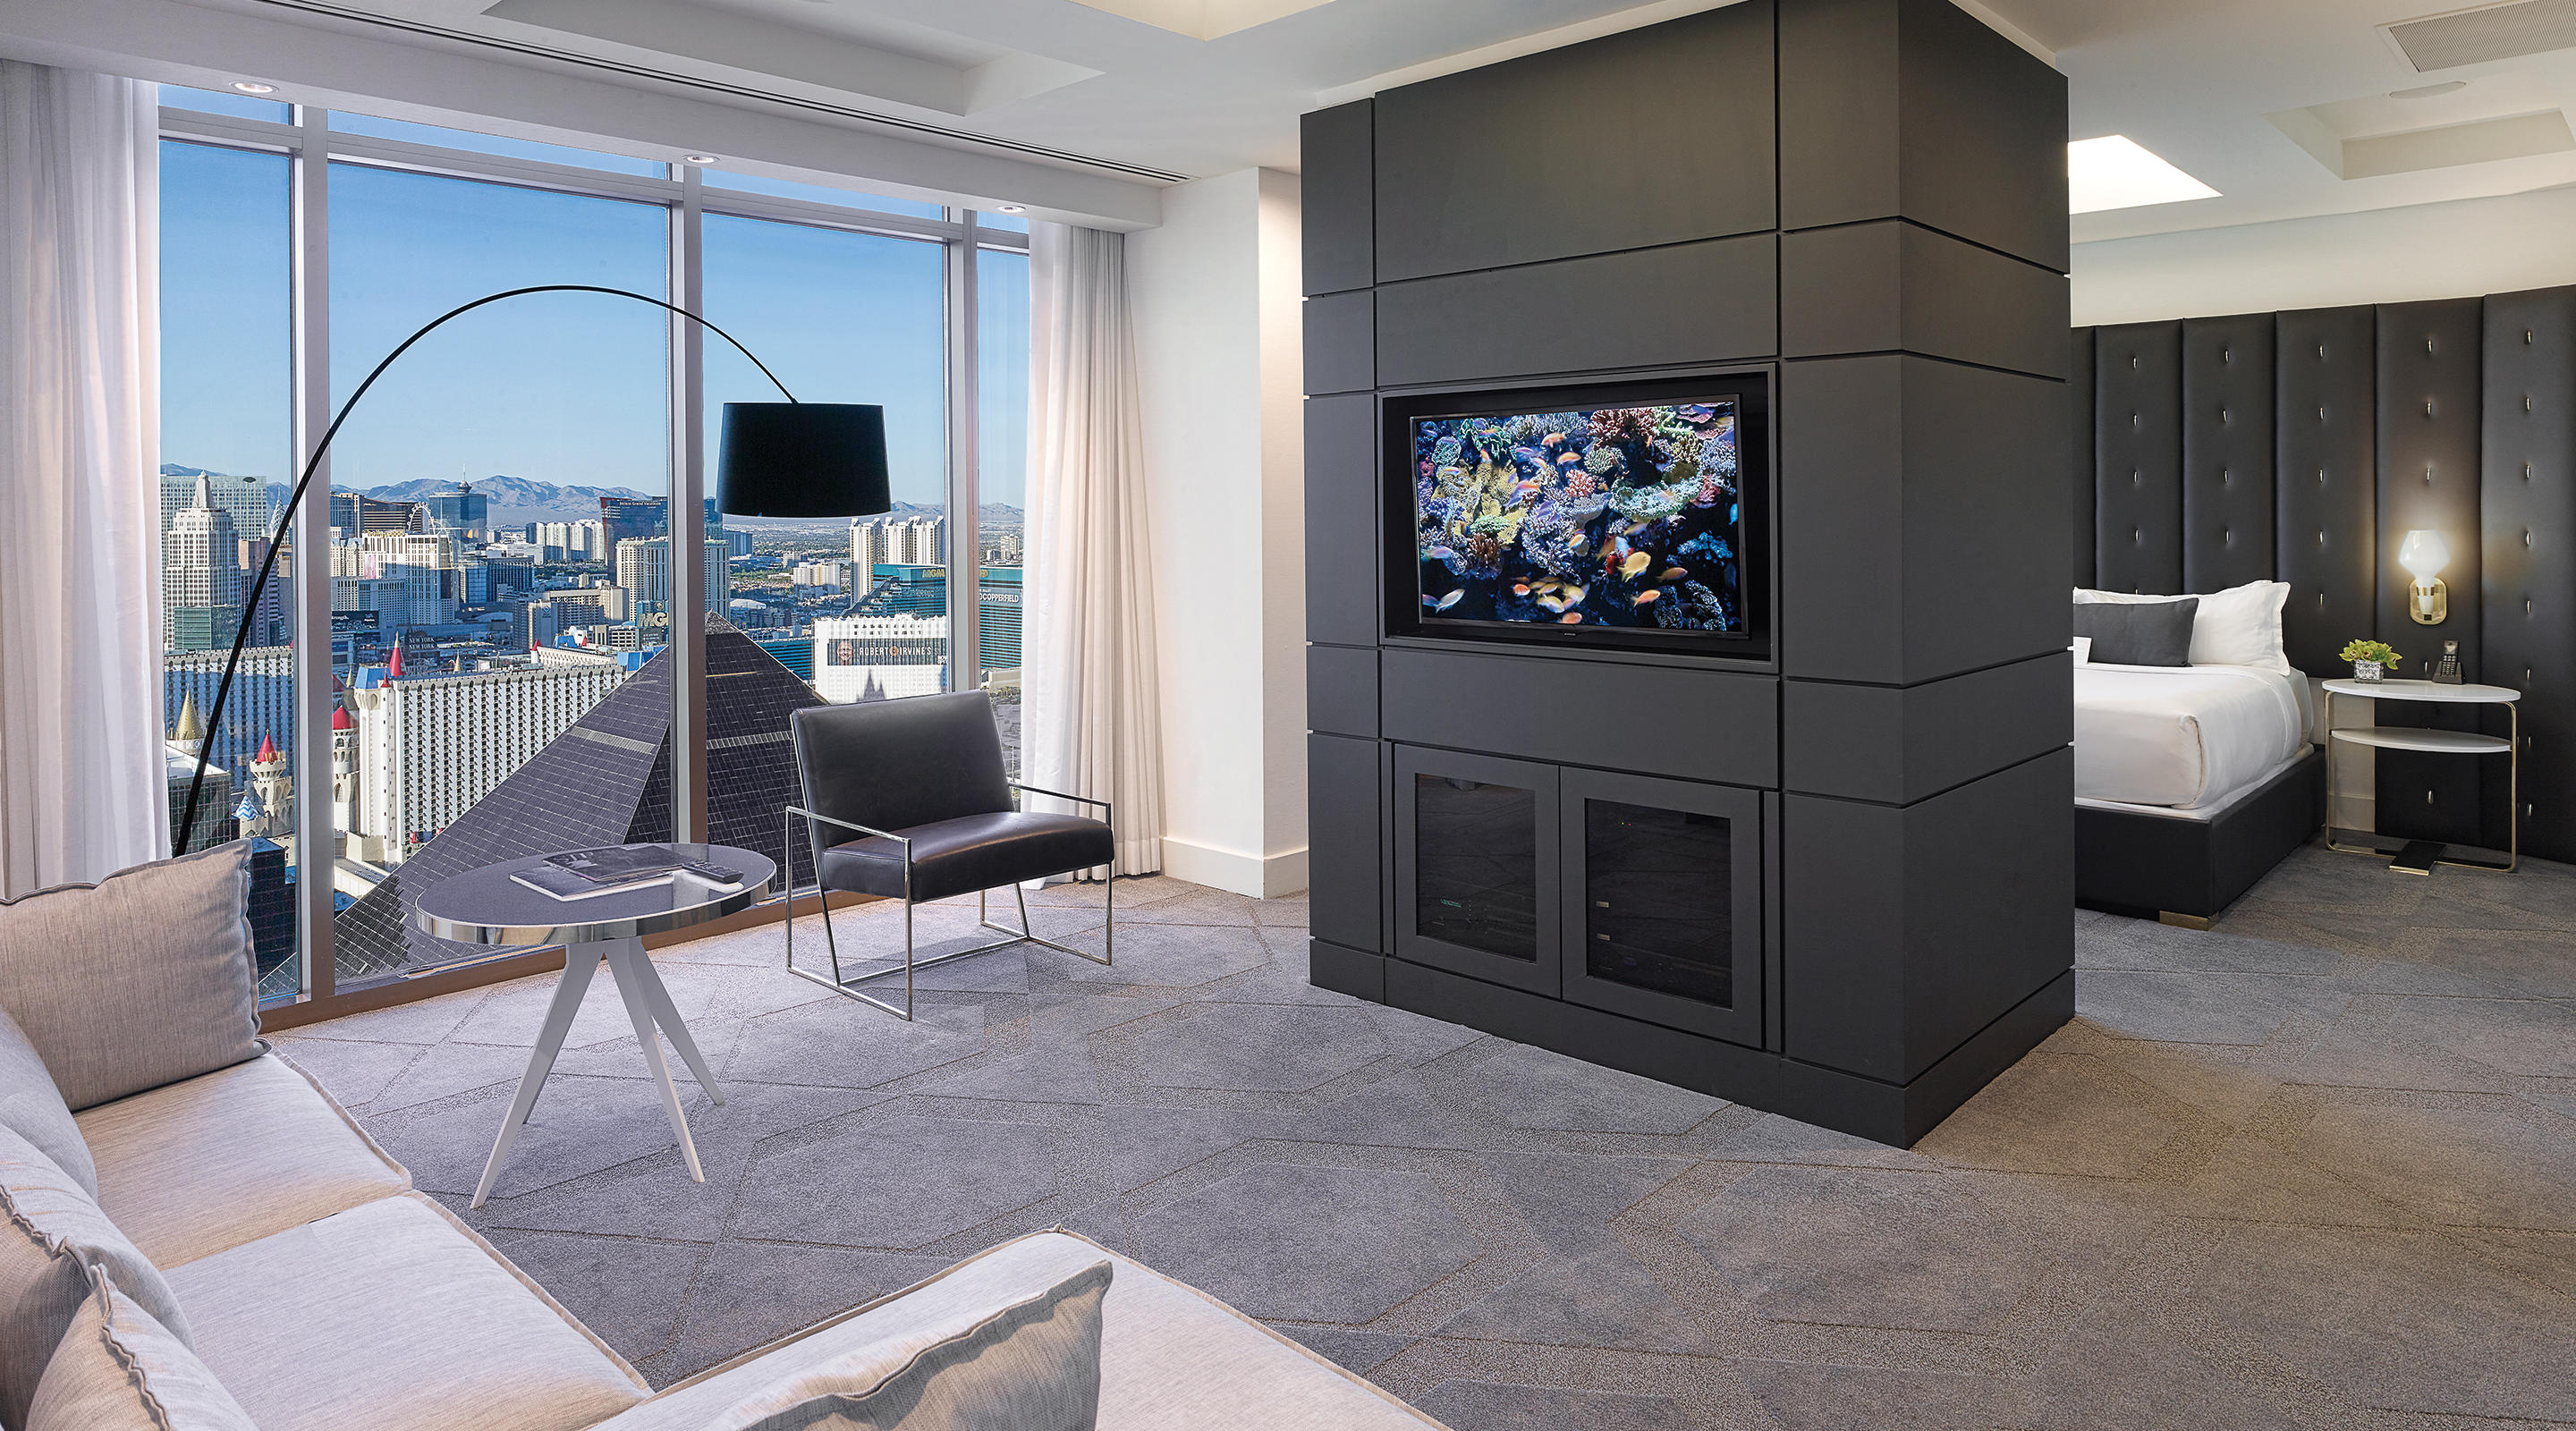 Delano Las Vegas Penthouse City View Living Room with View